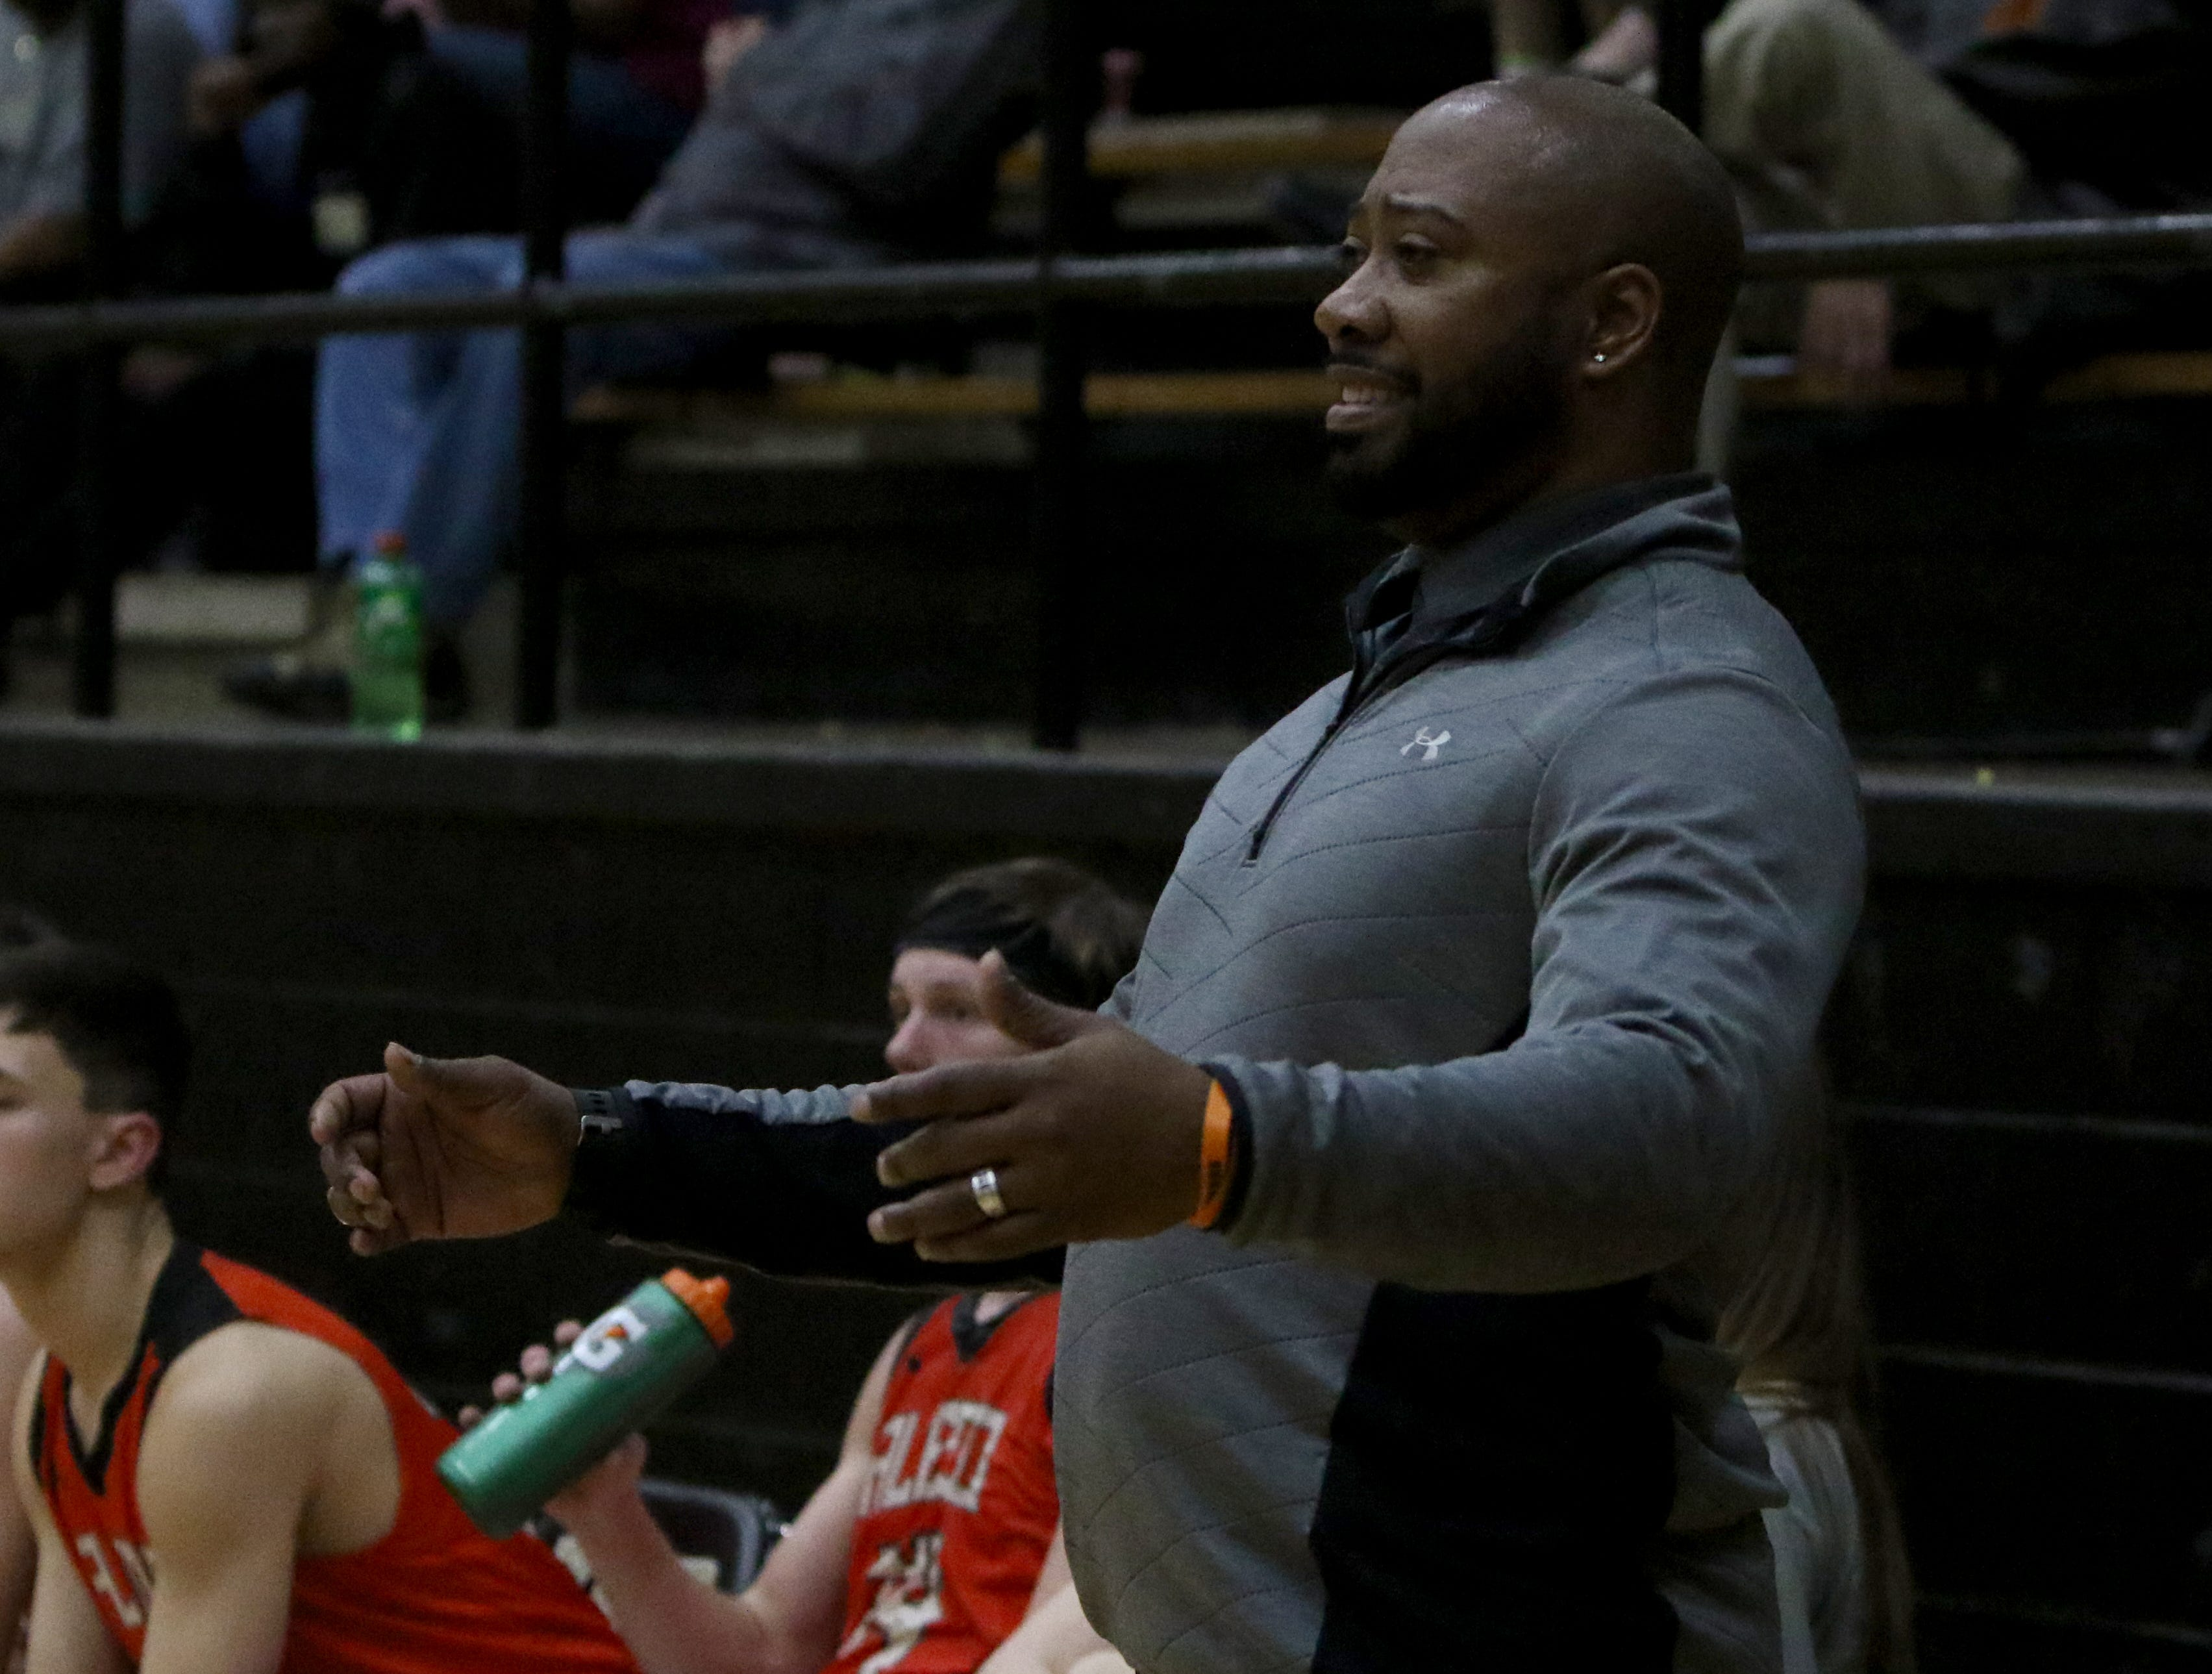 Aledo head basketball coach Fred Jones reacts to a play in the game against Rider Tuesday, Feb. 5, 2019, at Rider. The Raiders defeated the Bearcats 64-51.